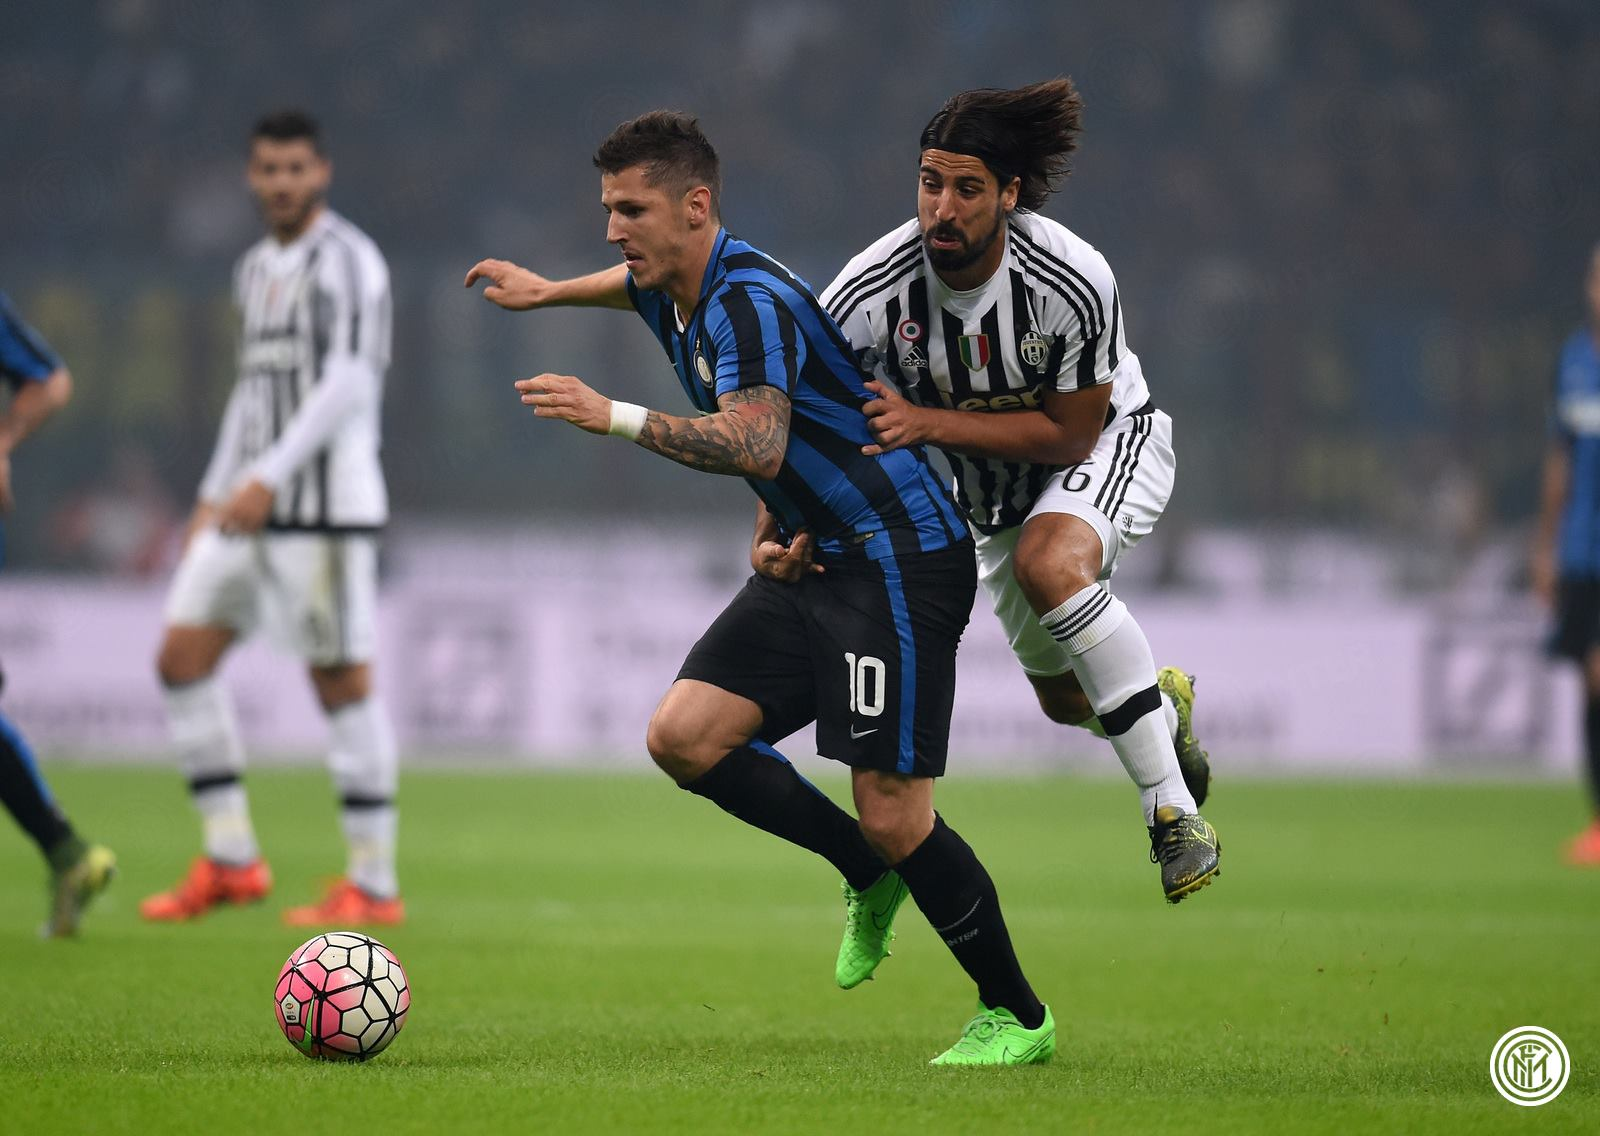 Jovetic vs Khedira